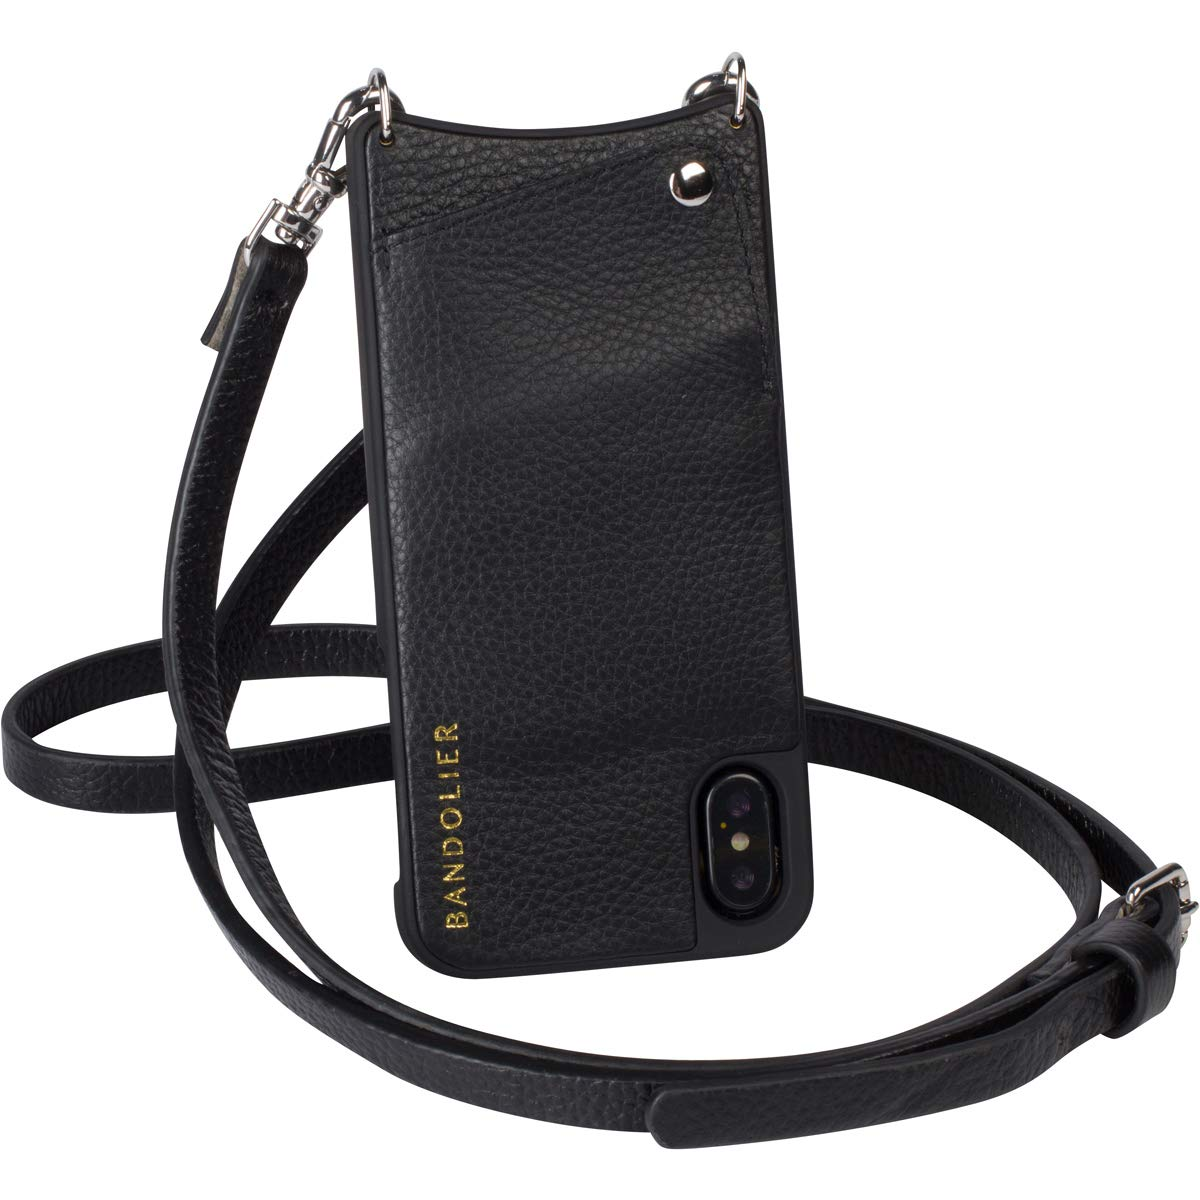 Bandolier [Emma] Crossbody Phone Case and Wallet - Compatible with iPhone Xs Max - Black Pebble Leather with Silver Detail by Bandolier